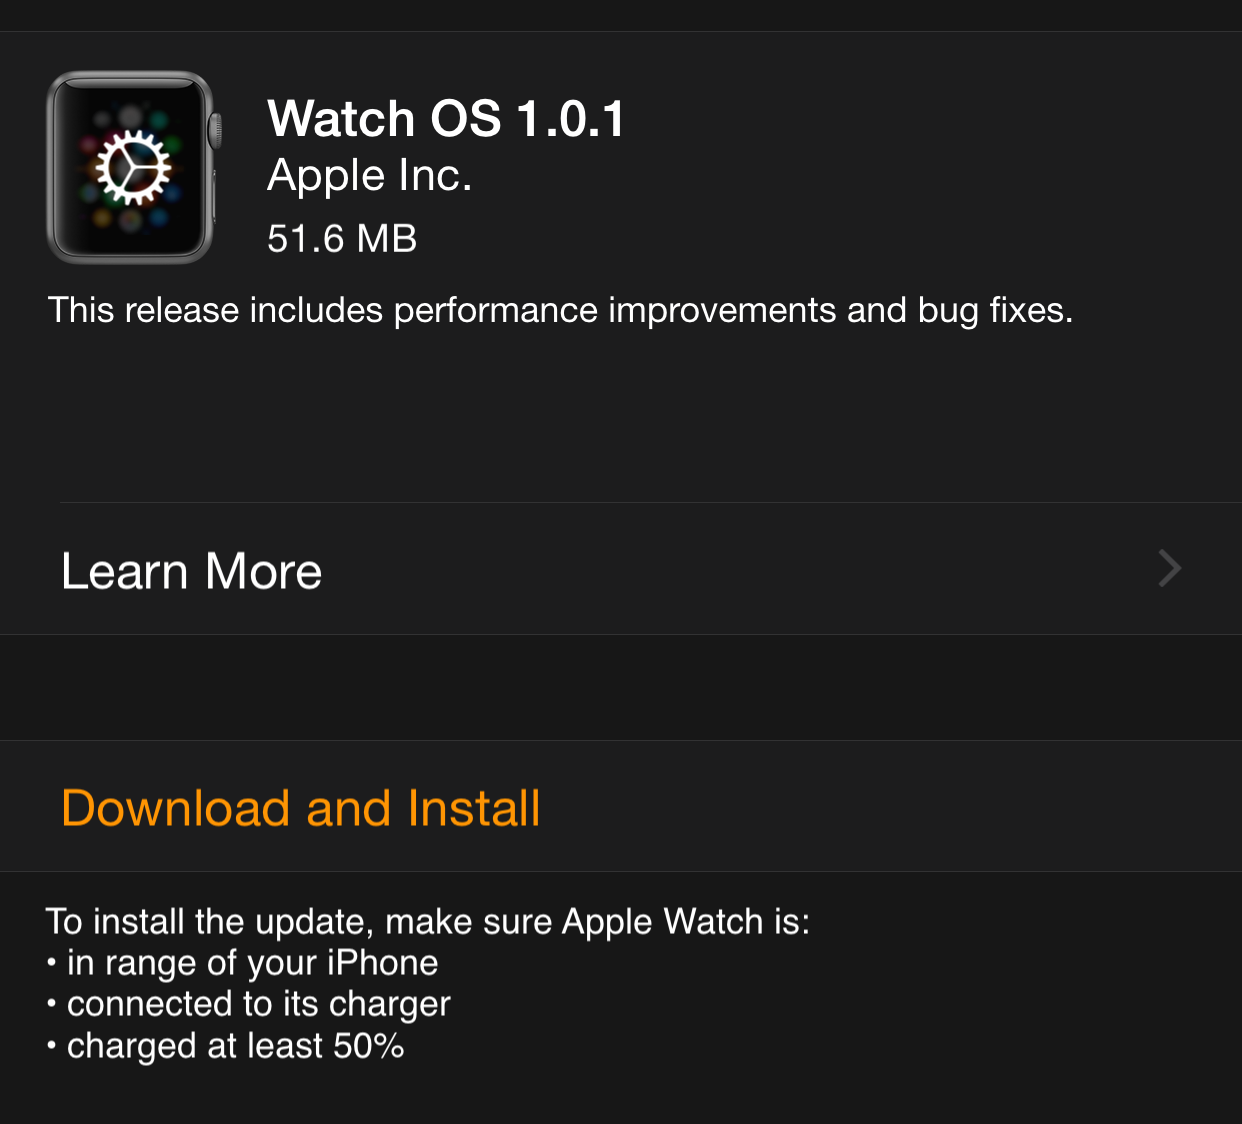 Watch OS 1.0.1 iPhone